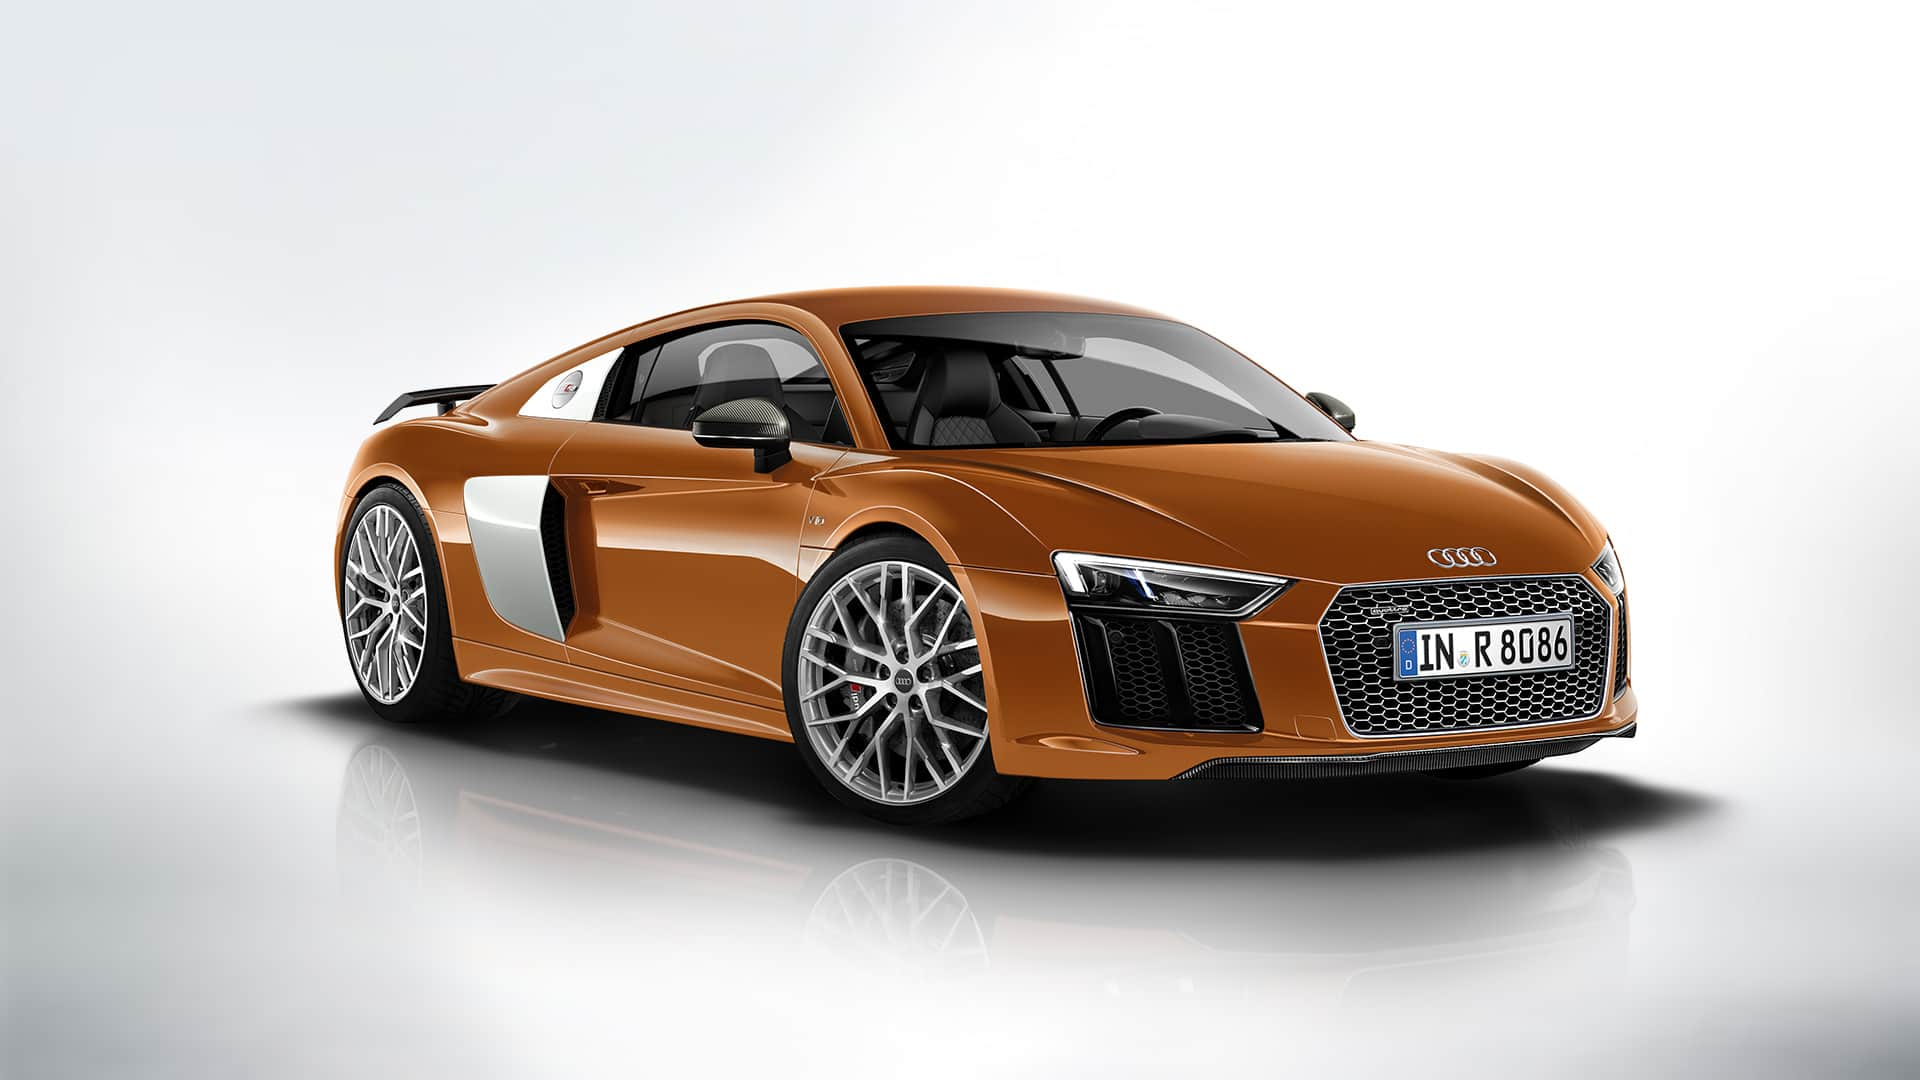 Audi Exclusive Vehicle Shown. Available As Special Order Only.